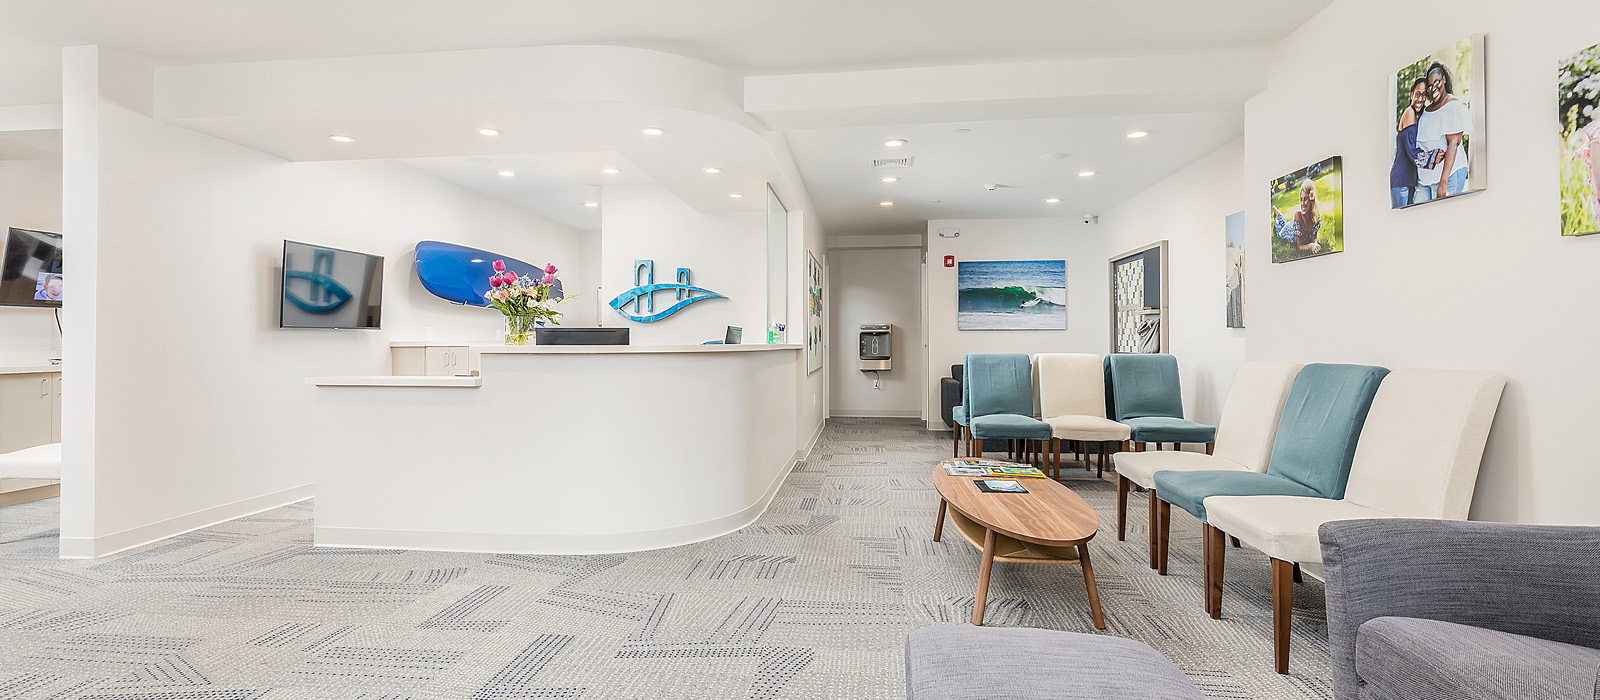 Forster Orthodontics patient waiting area and front desk